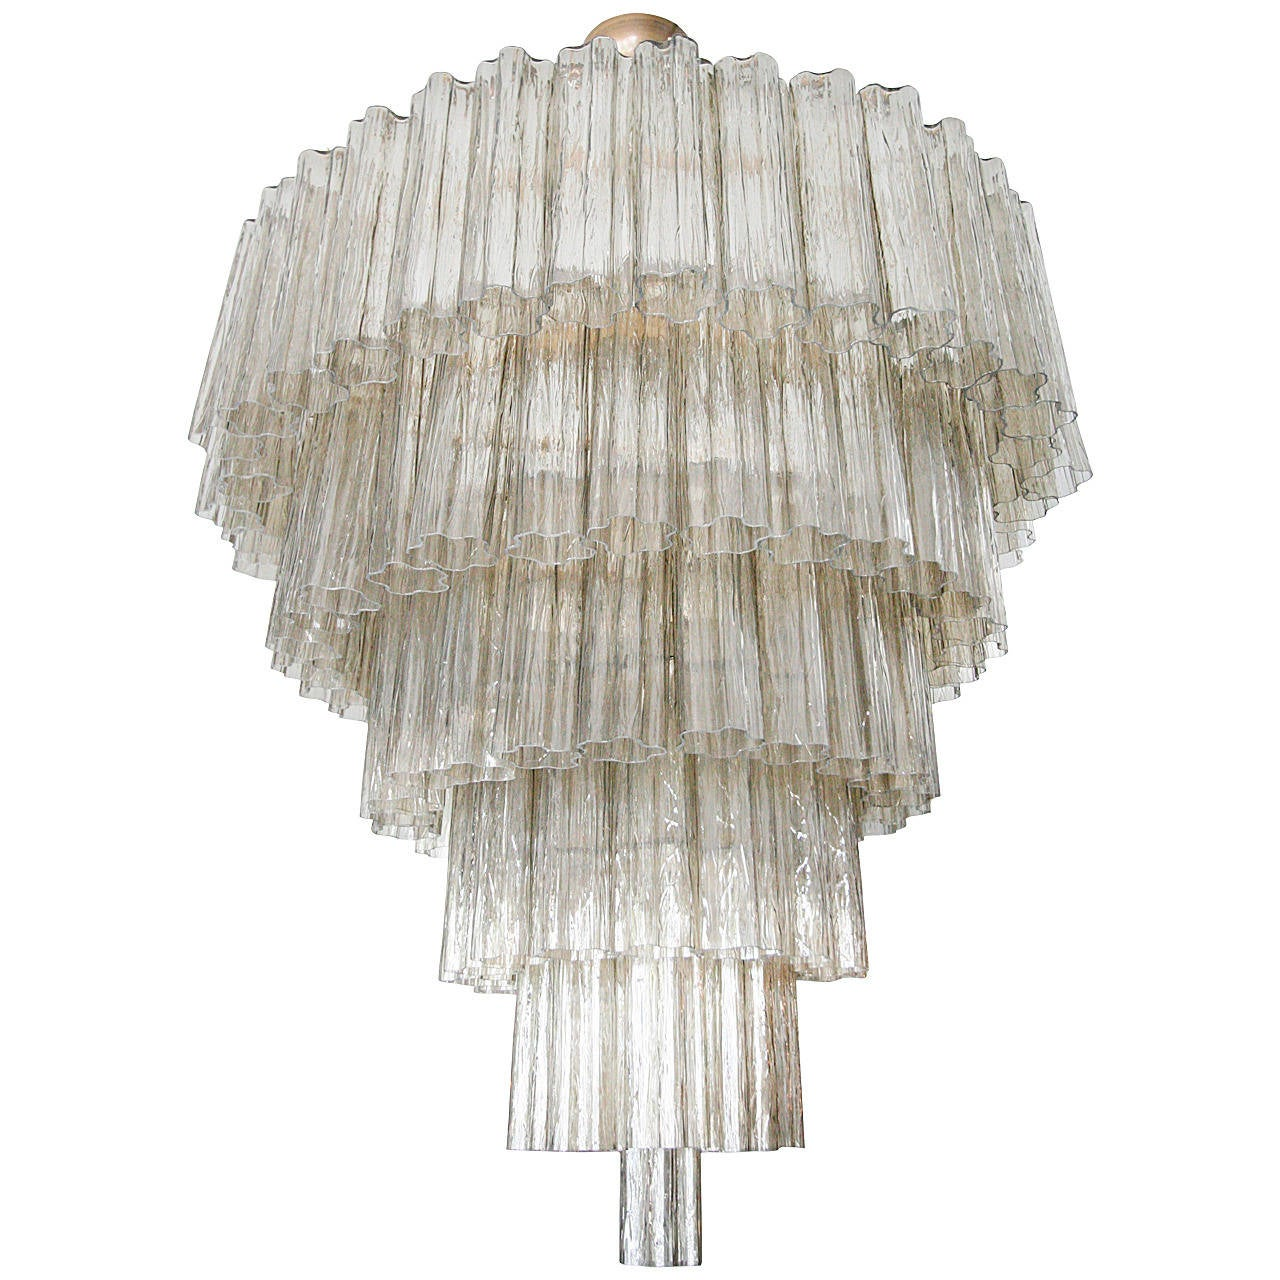 Tiered 1970s Smoked Glass Murano Chandelier For Sale at